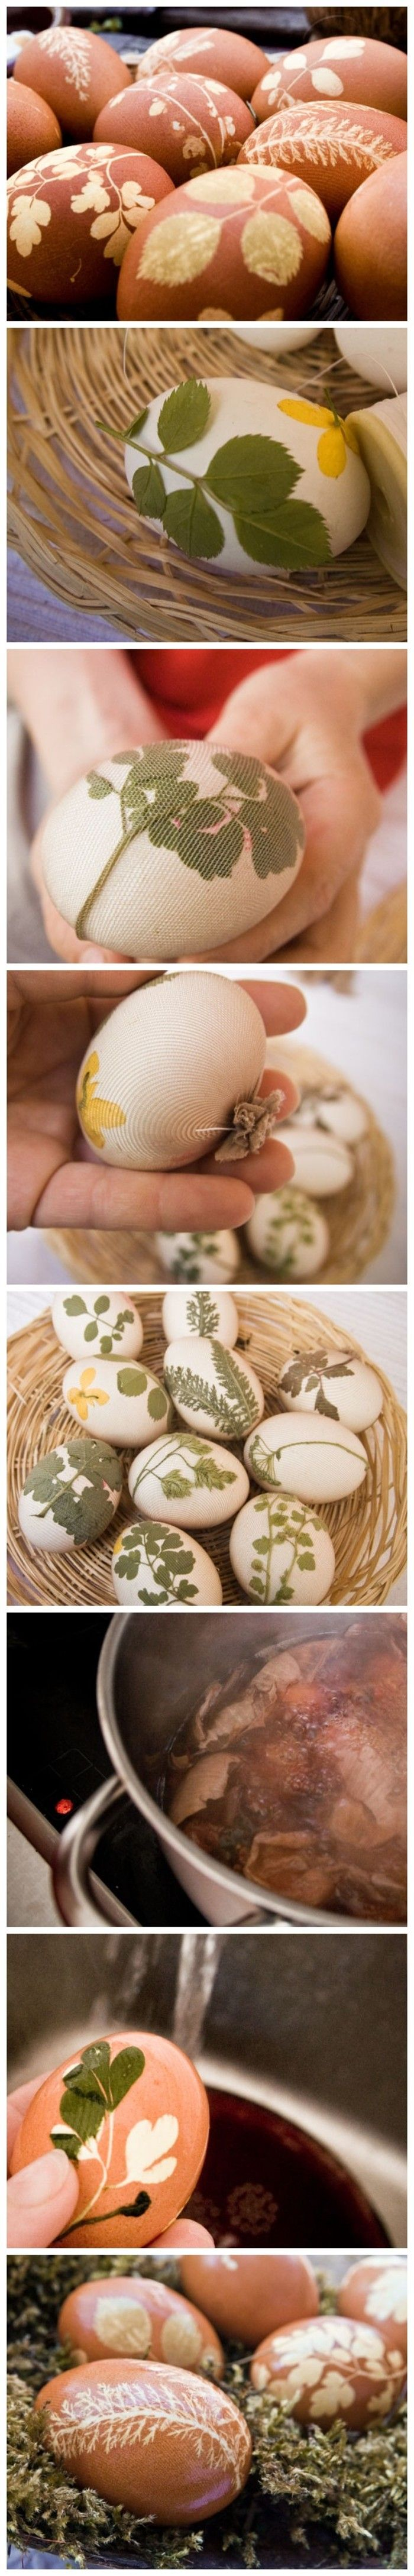 Do you want to make the best Easter eggs ever ? Just color them with onion & cabbage dye and use herbs and flowers as stencils to create pretty designs.